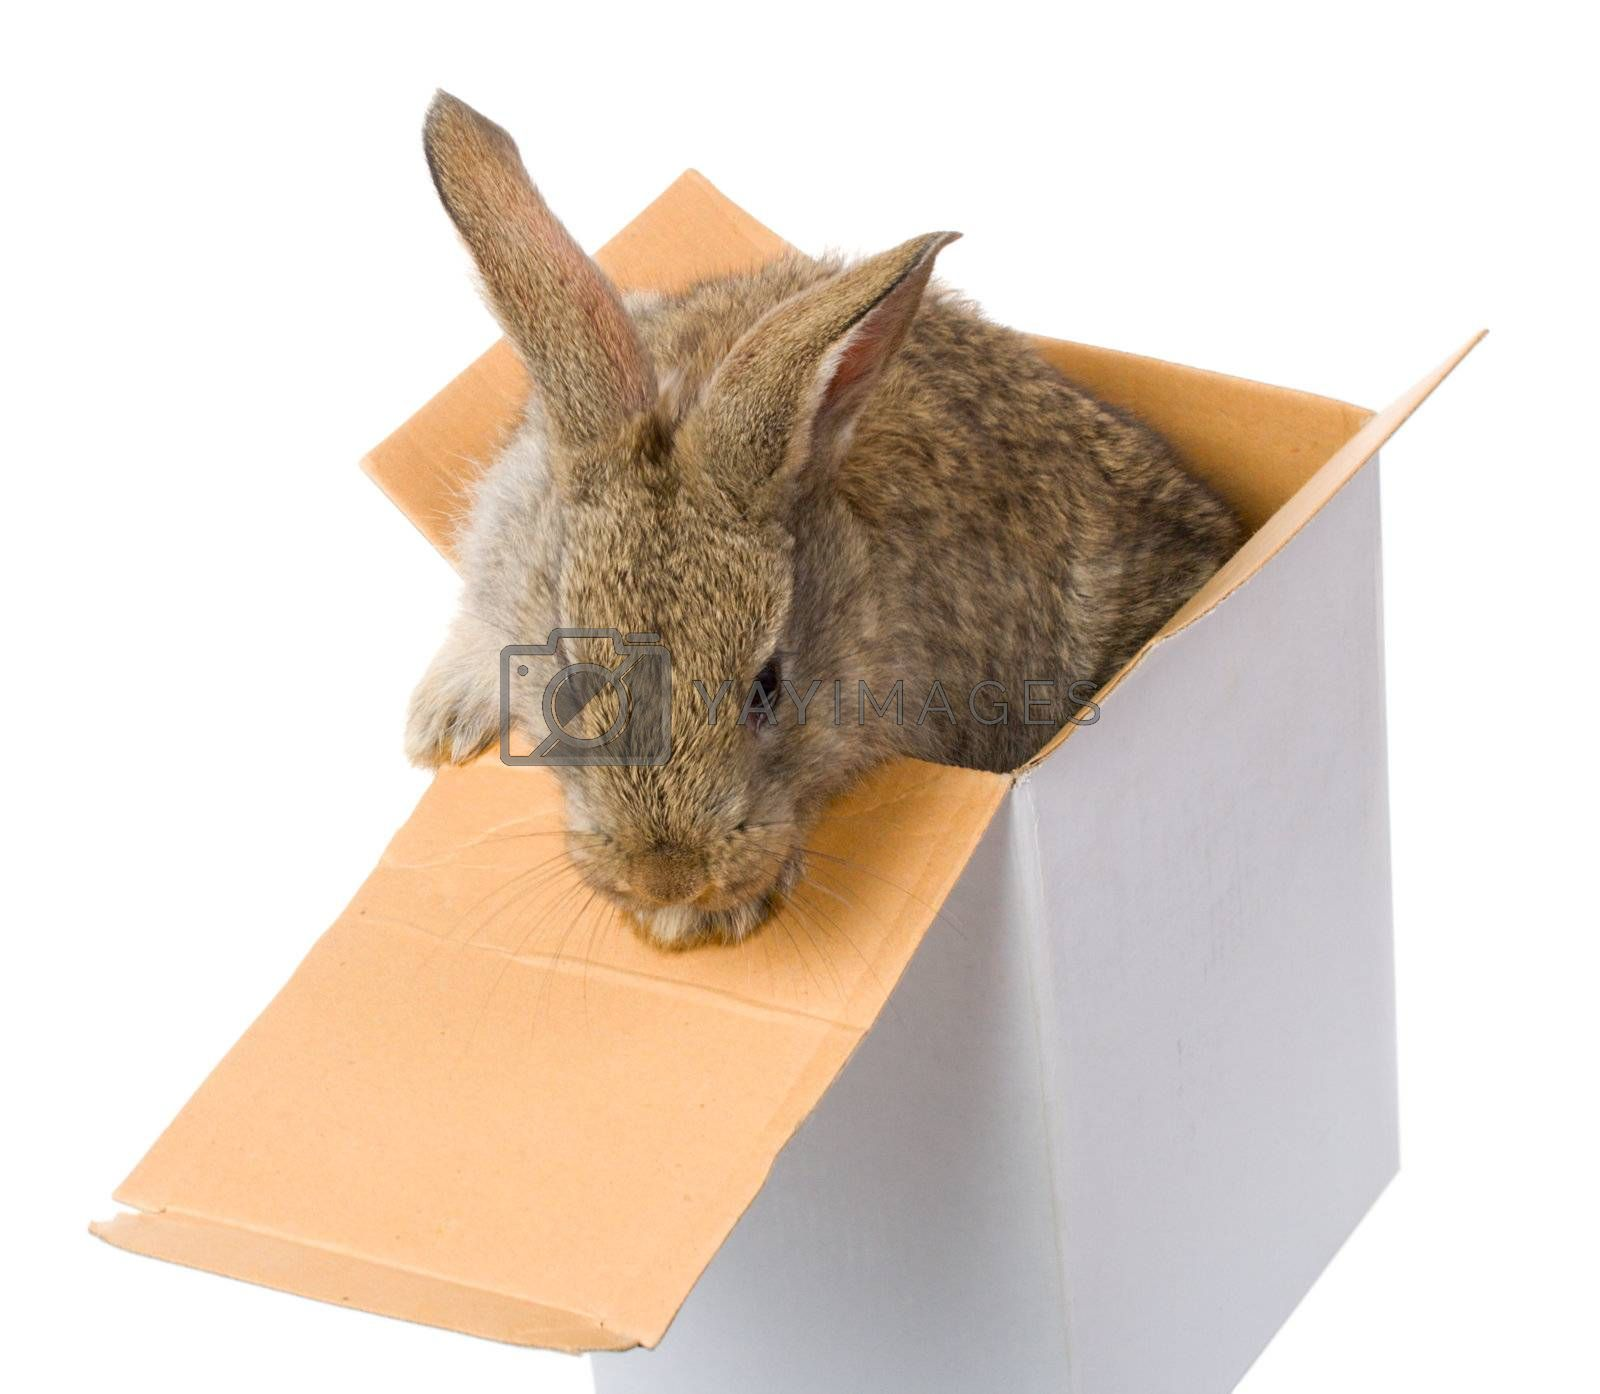 close-up bunny on box as gift, isolated on white